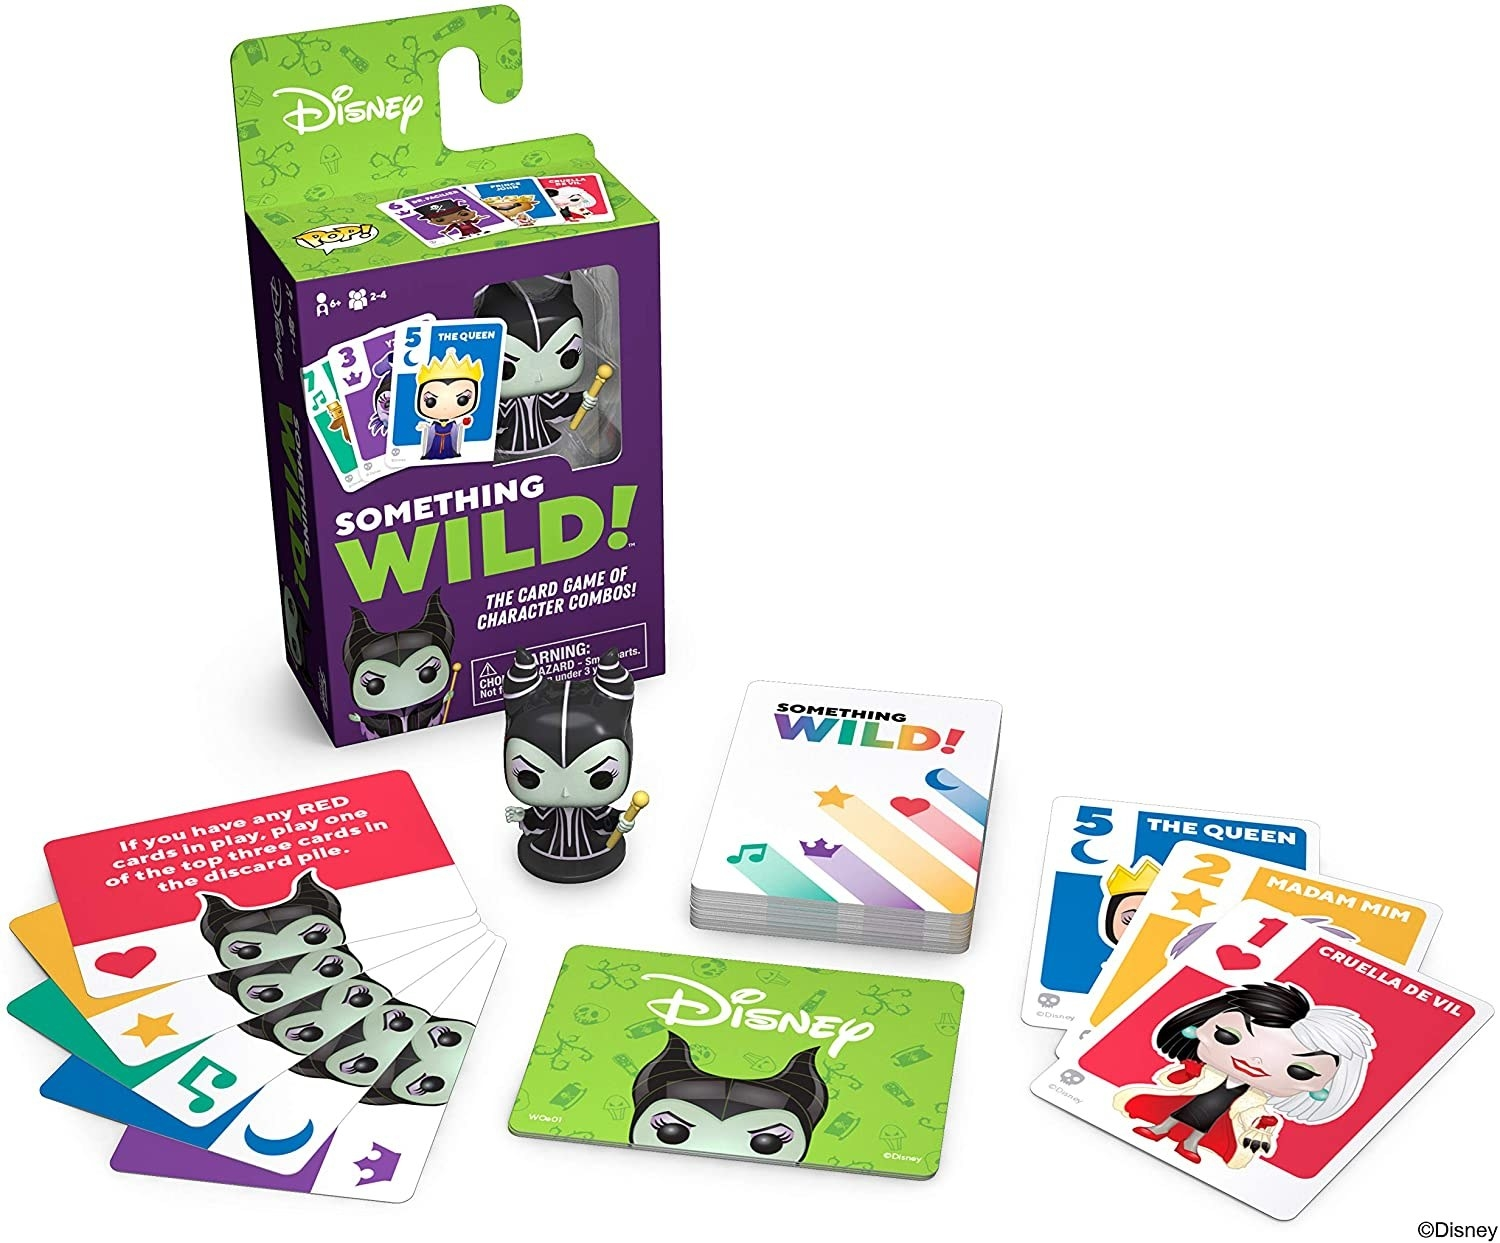 The Maleficent card game